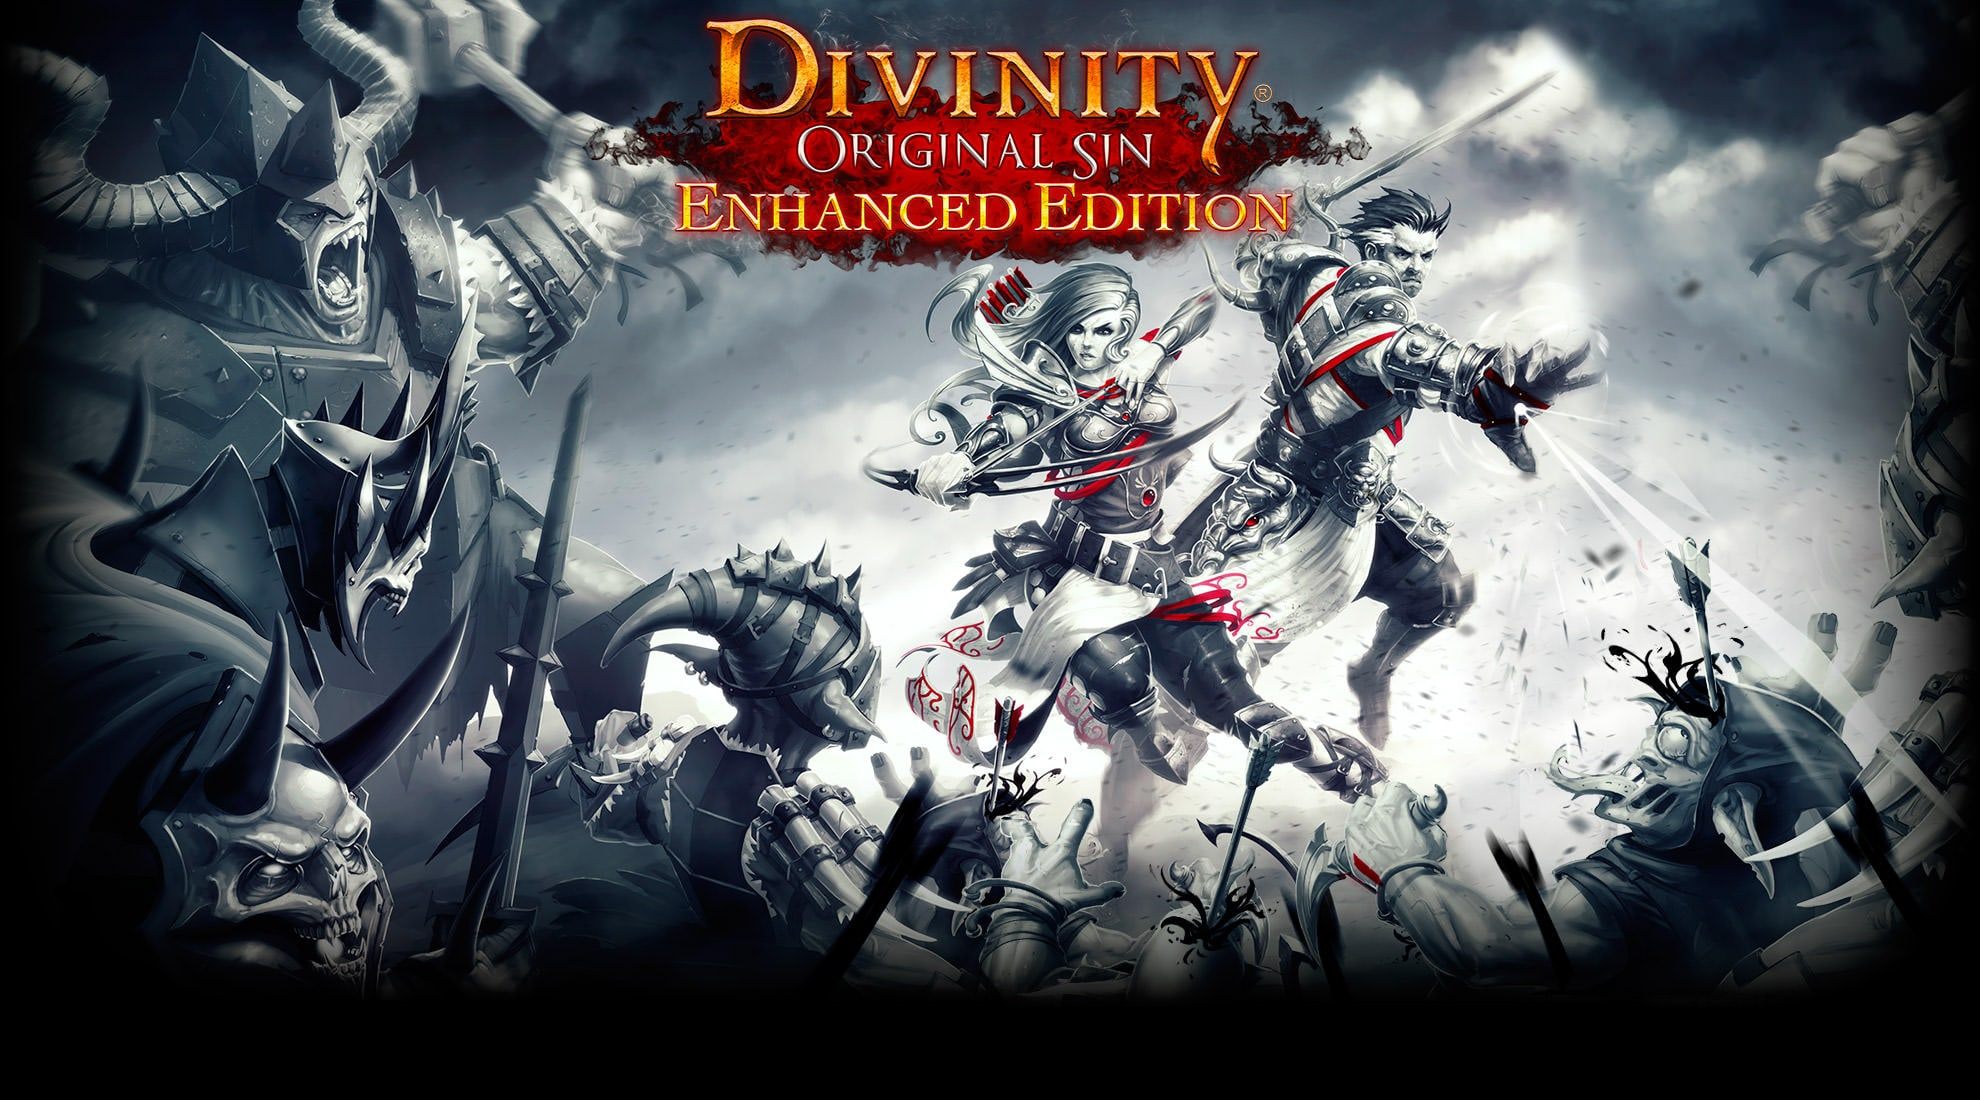 Divinity: Original Sin - Enhanced Edition Desktop wallpapers